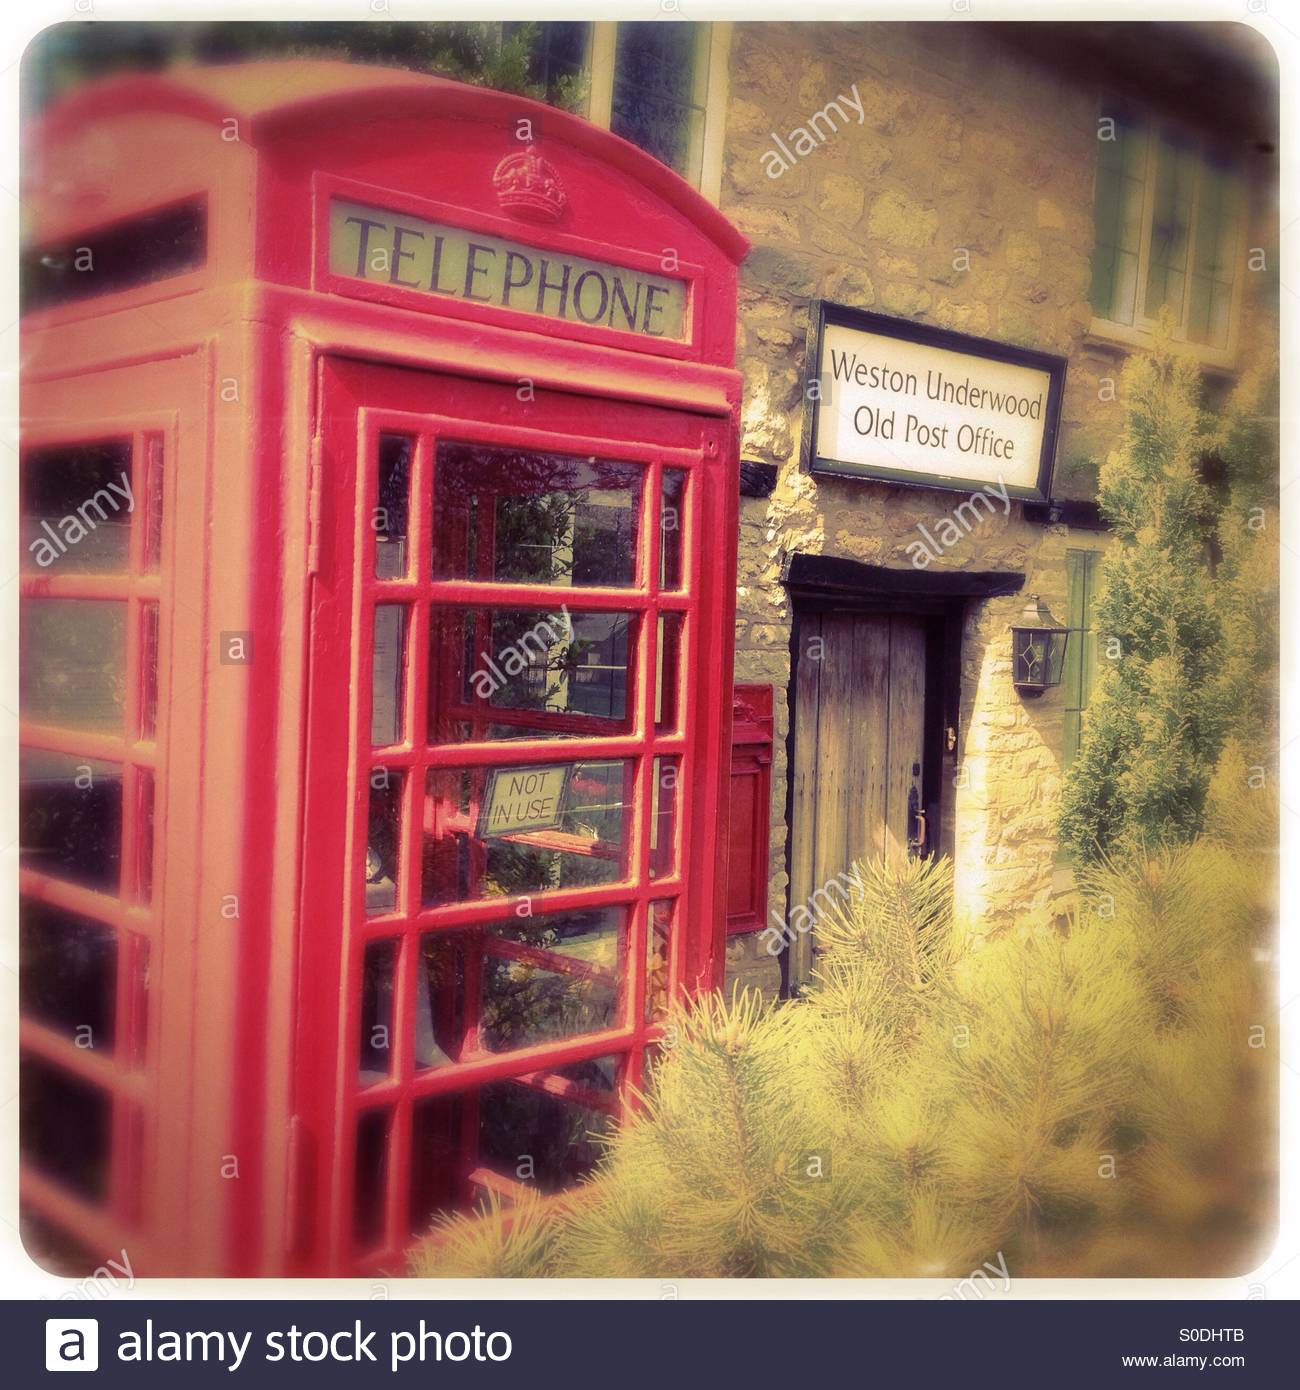 Old style red telephone kiosk, not in use, in the garden of Weston Underwood Old Post Office. - Stock Image